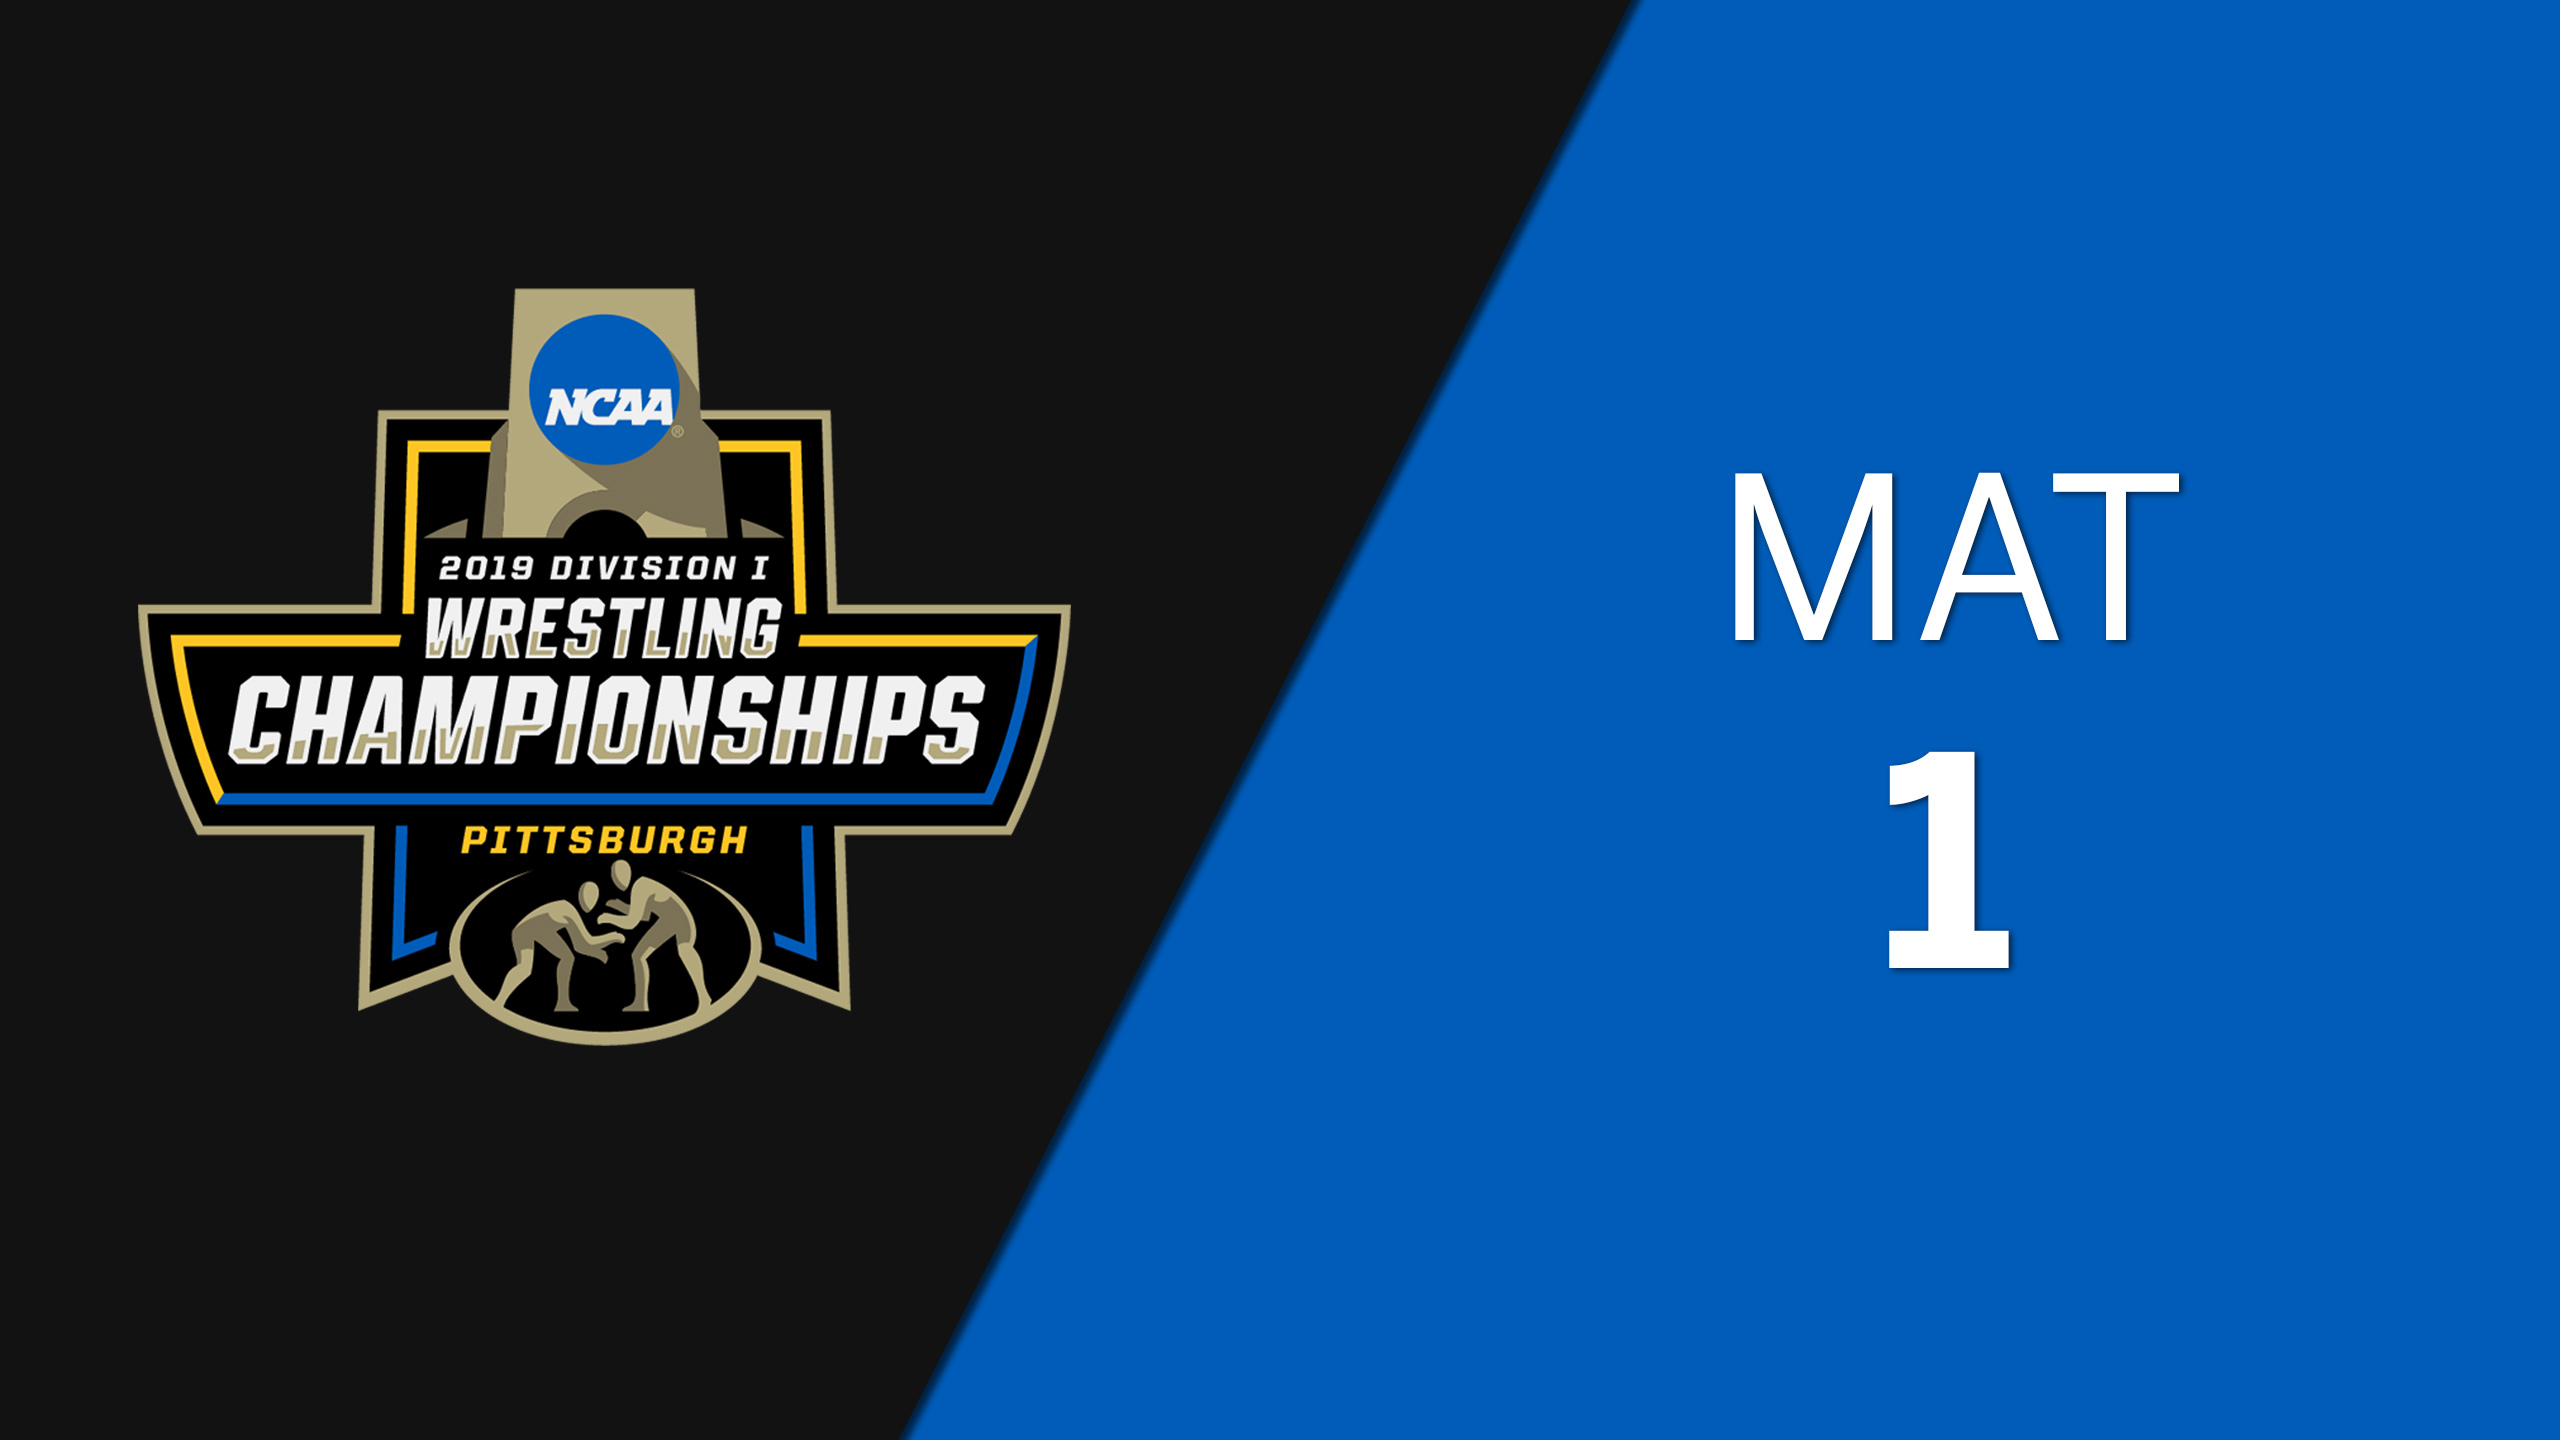 NCAA Wrestling Championship (Mat 1, First Round)